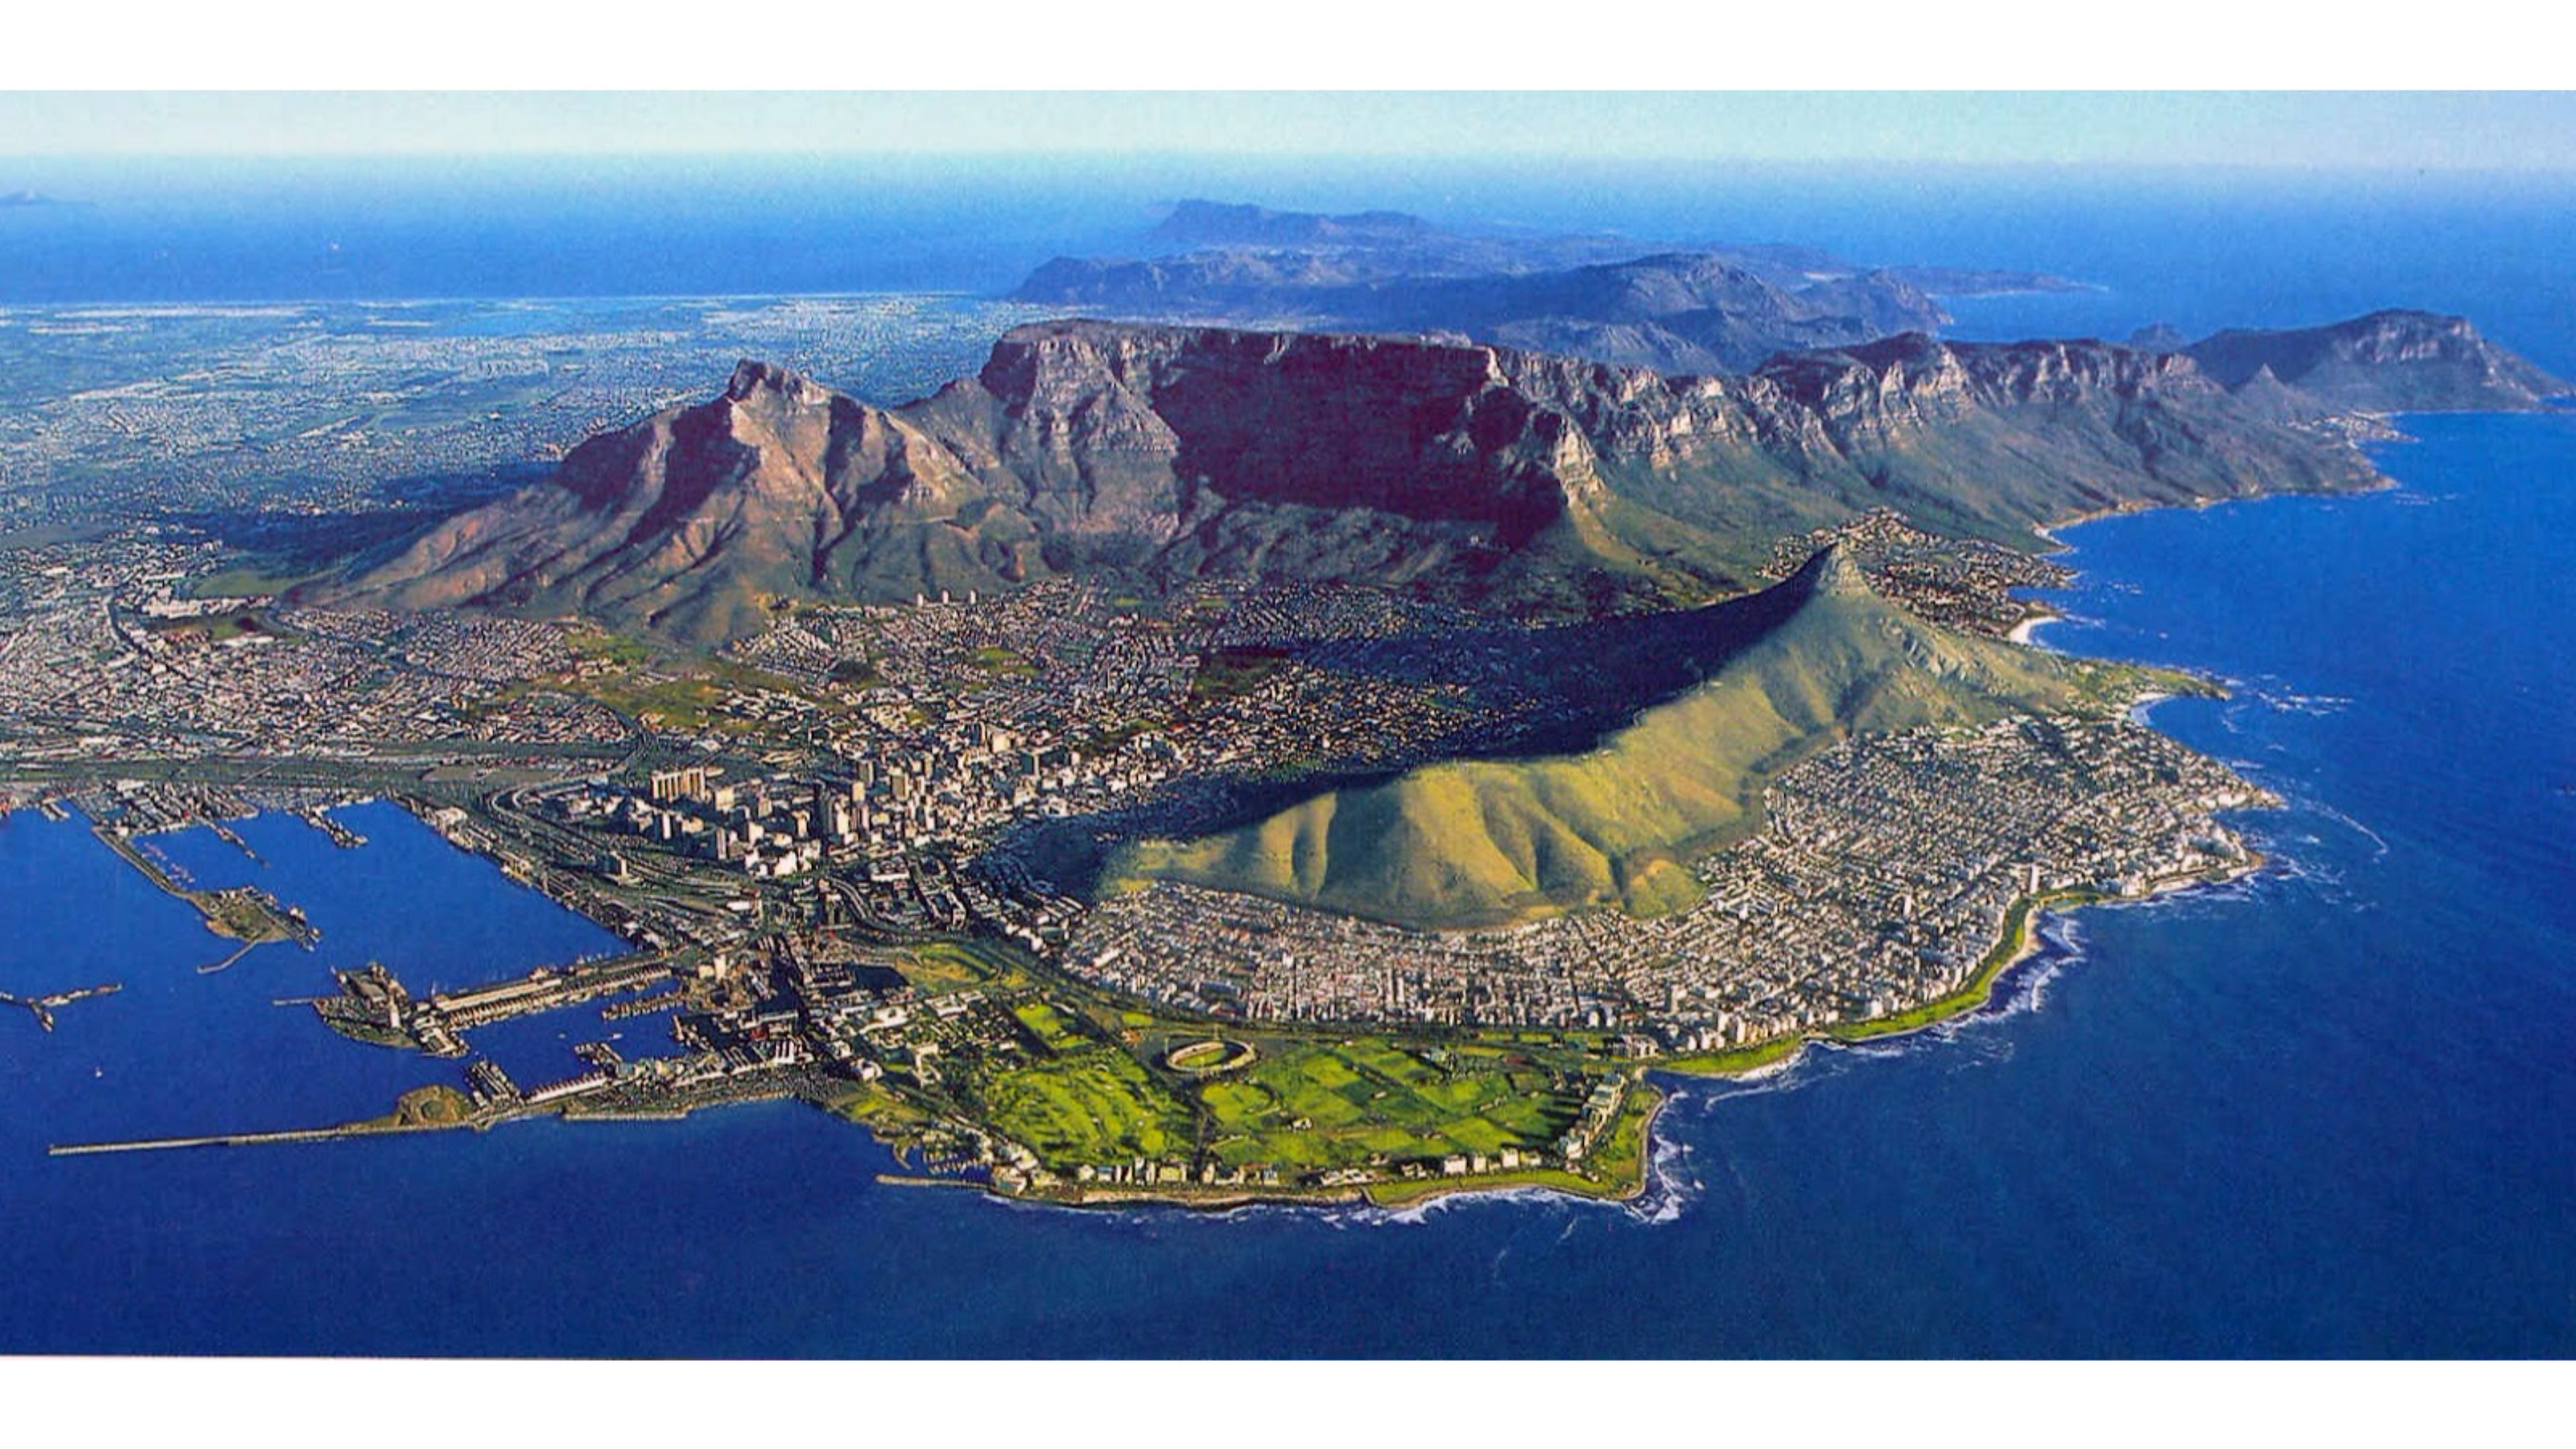 New Cape Town South Africa 4k Wallpaper Free 4k Wallpaper